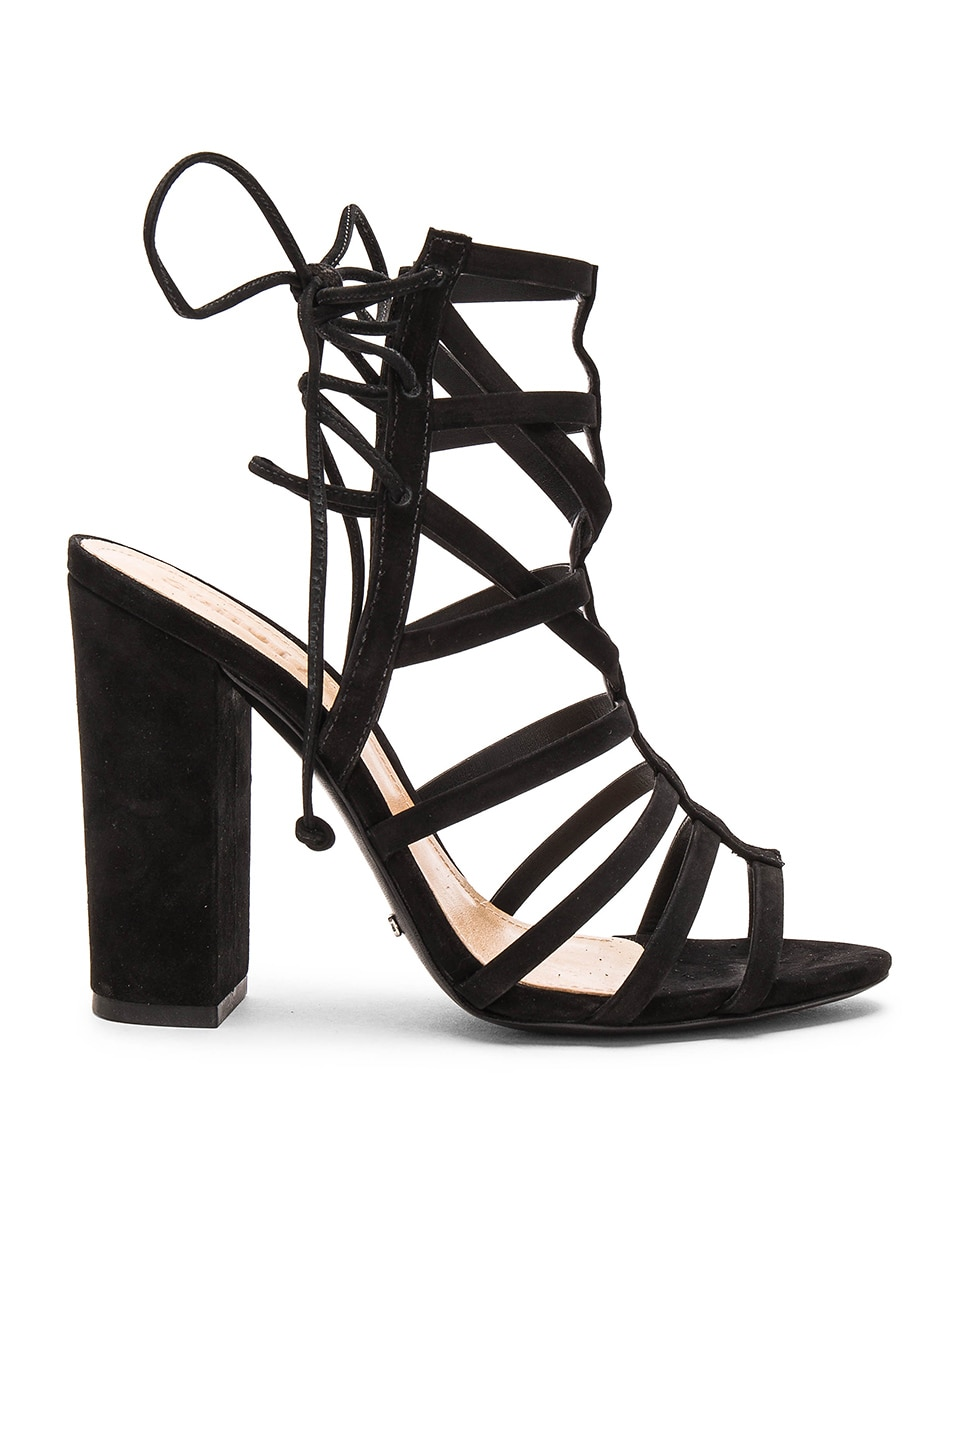 Photo of Loriana Heel by Schutz shoes